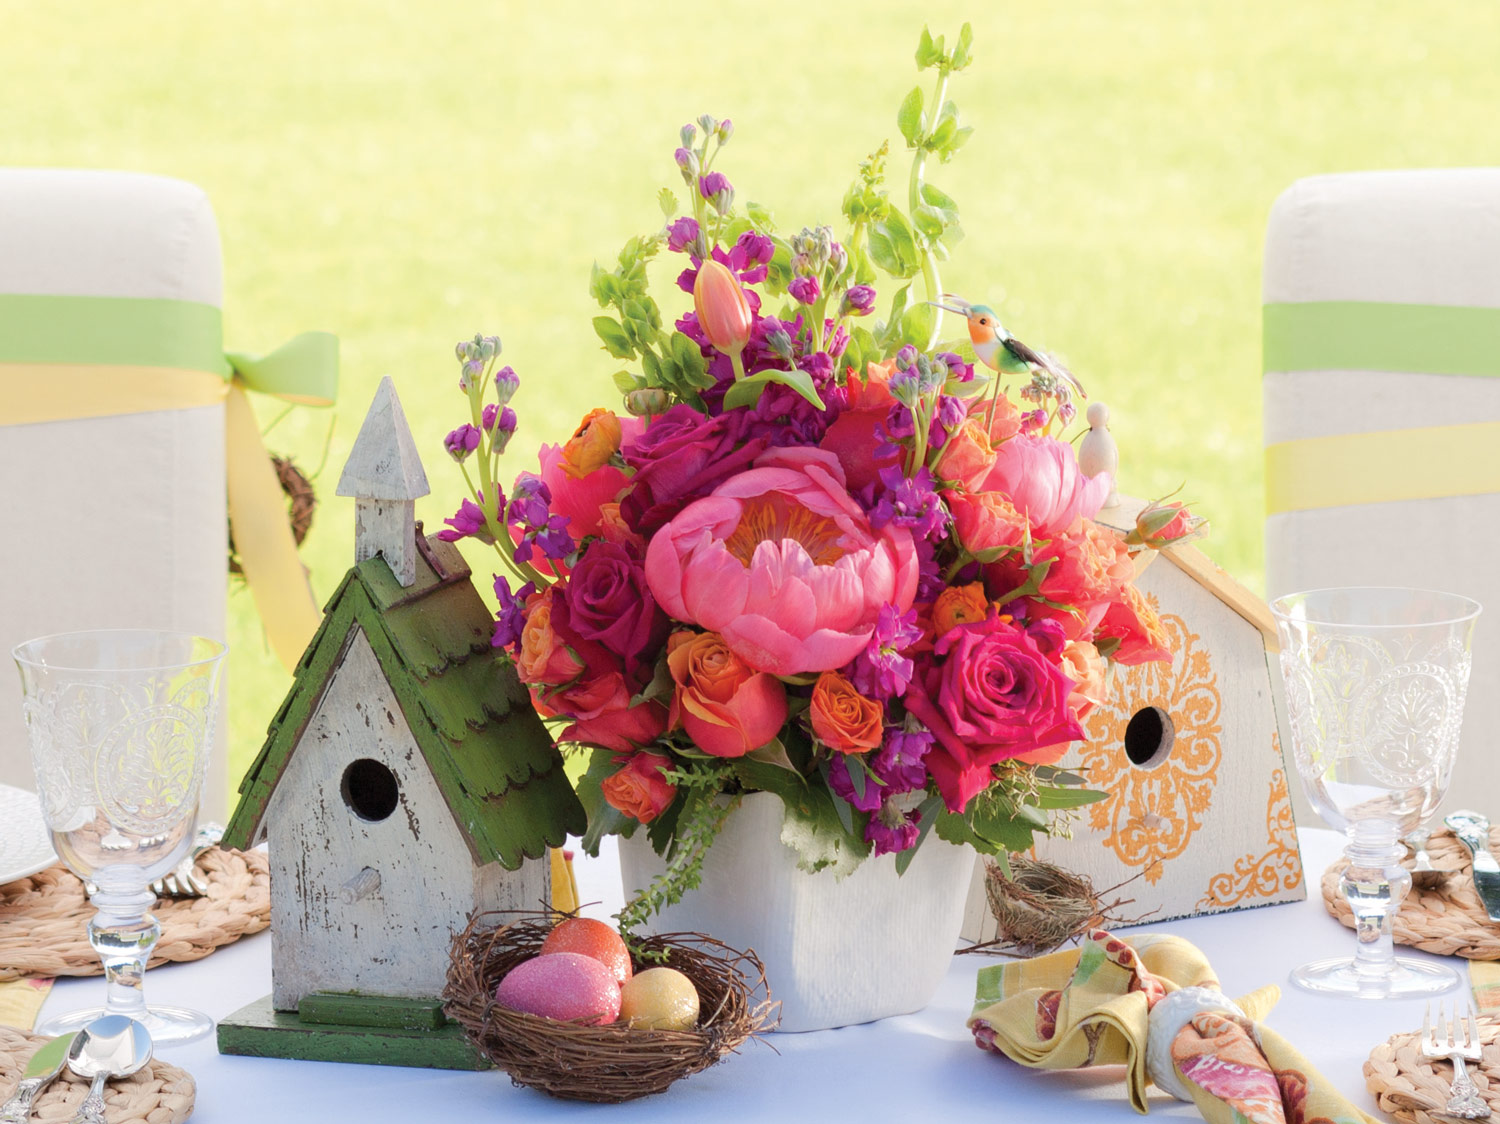 14 Diy Home Decor Ideas To Refresh Your This Spring Top Inspirations Easter Flower Arrangements